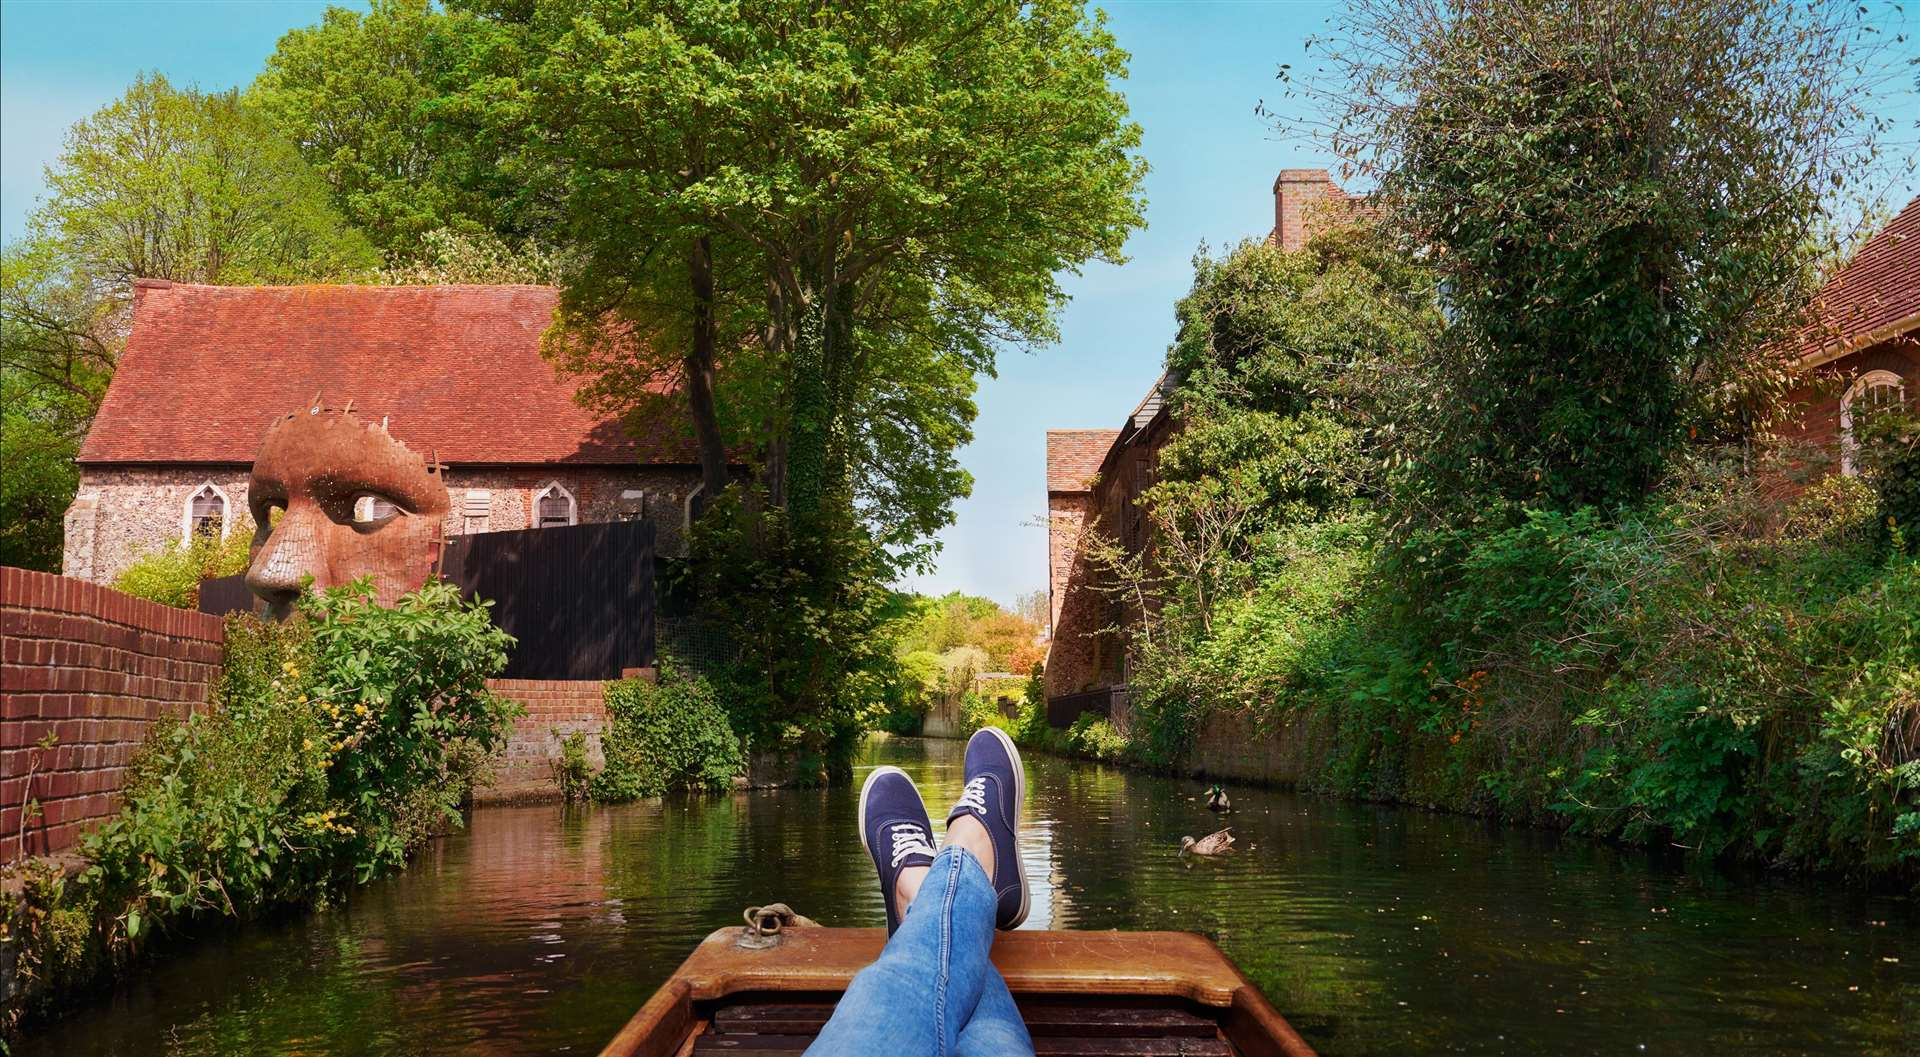 Canterbury punts pictured on a Visit Kent tourism poster - the city was the big draw once again